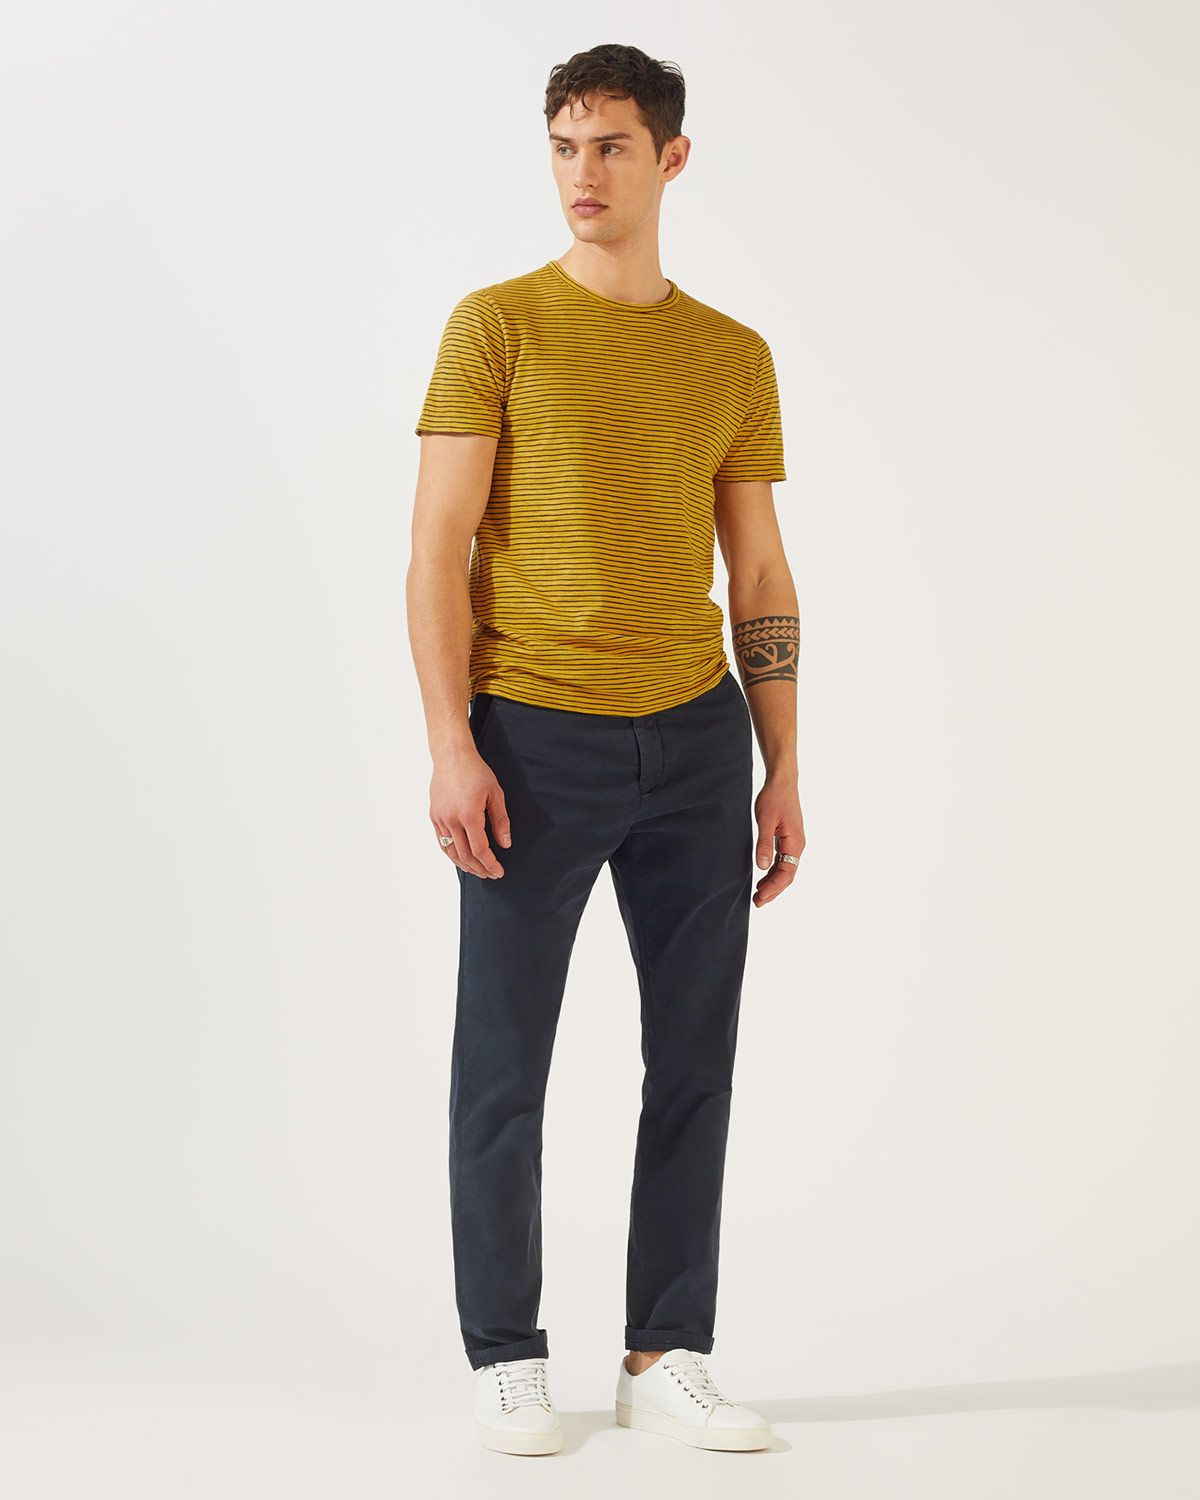 Gmt Dye Slim Fit Stretch Chino